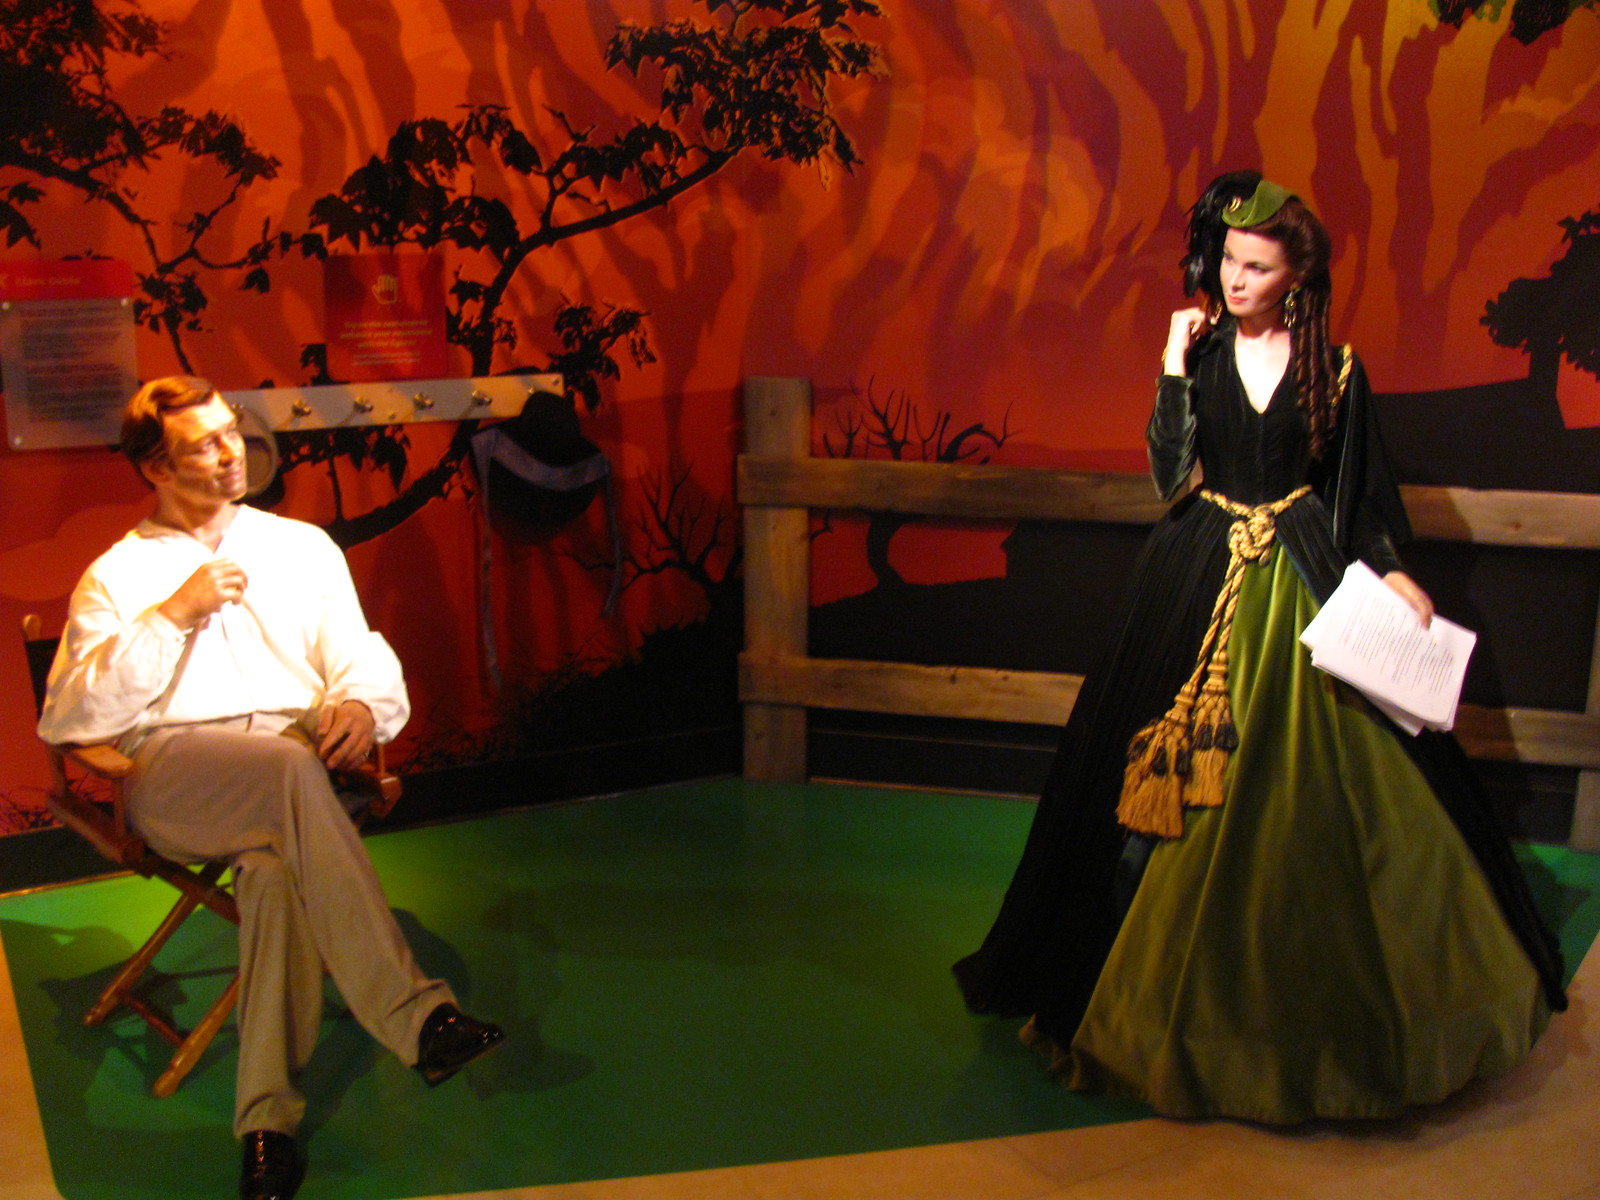 Gone with the Wind scene at Madame Tussauds Hollywood